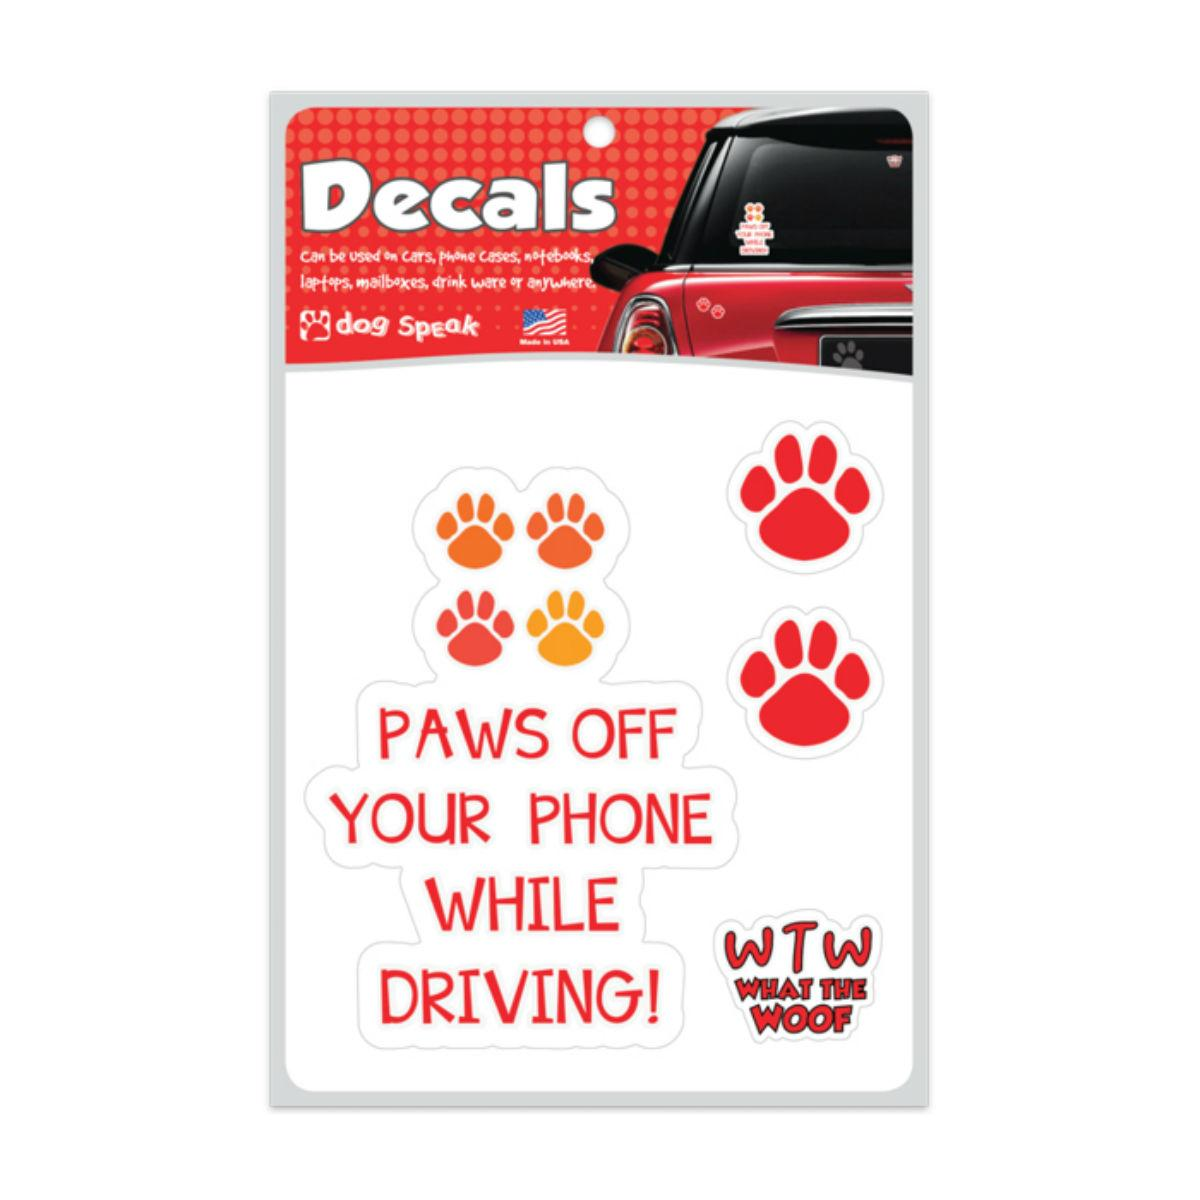 Paws Off Your Phone Car Window Decal by Dog Speak